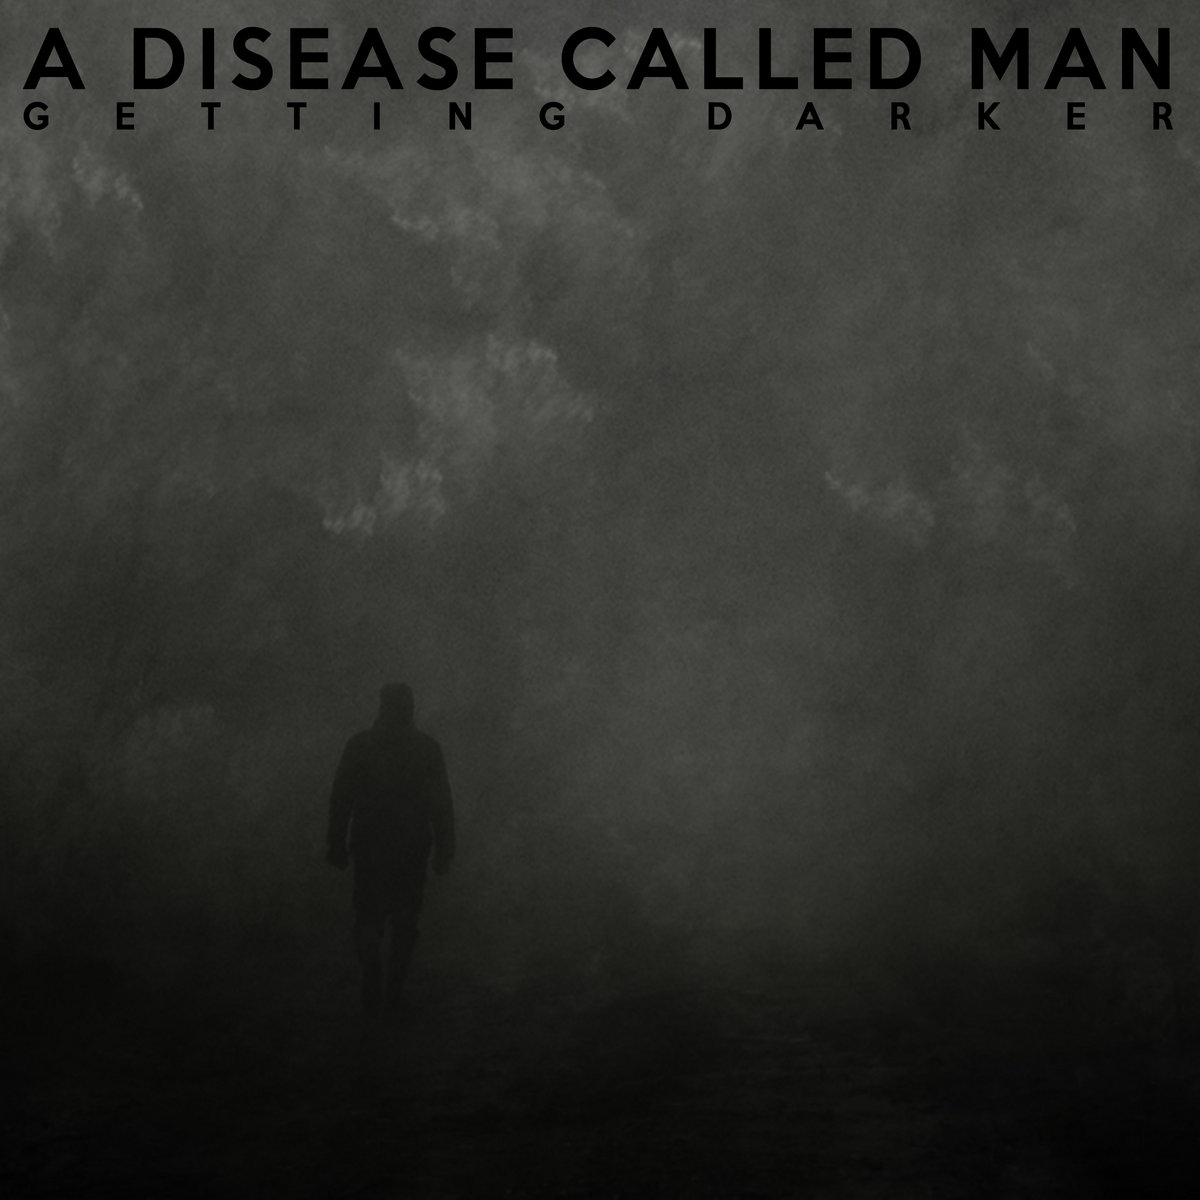 A DISEASE CALLED MAN – Getting Darker